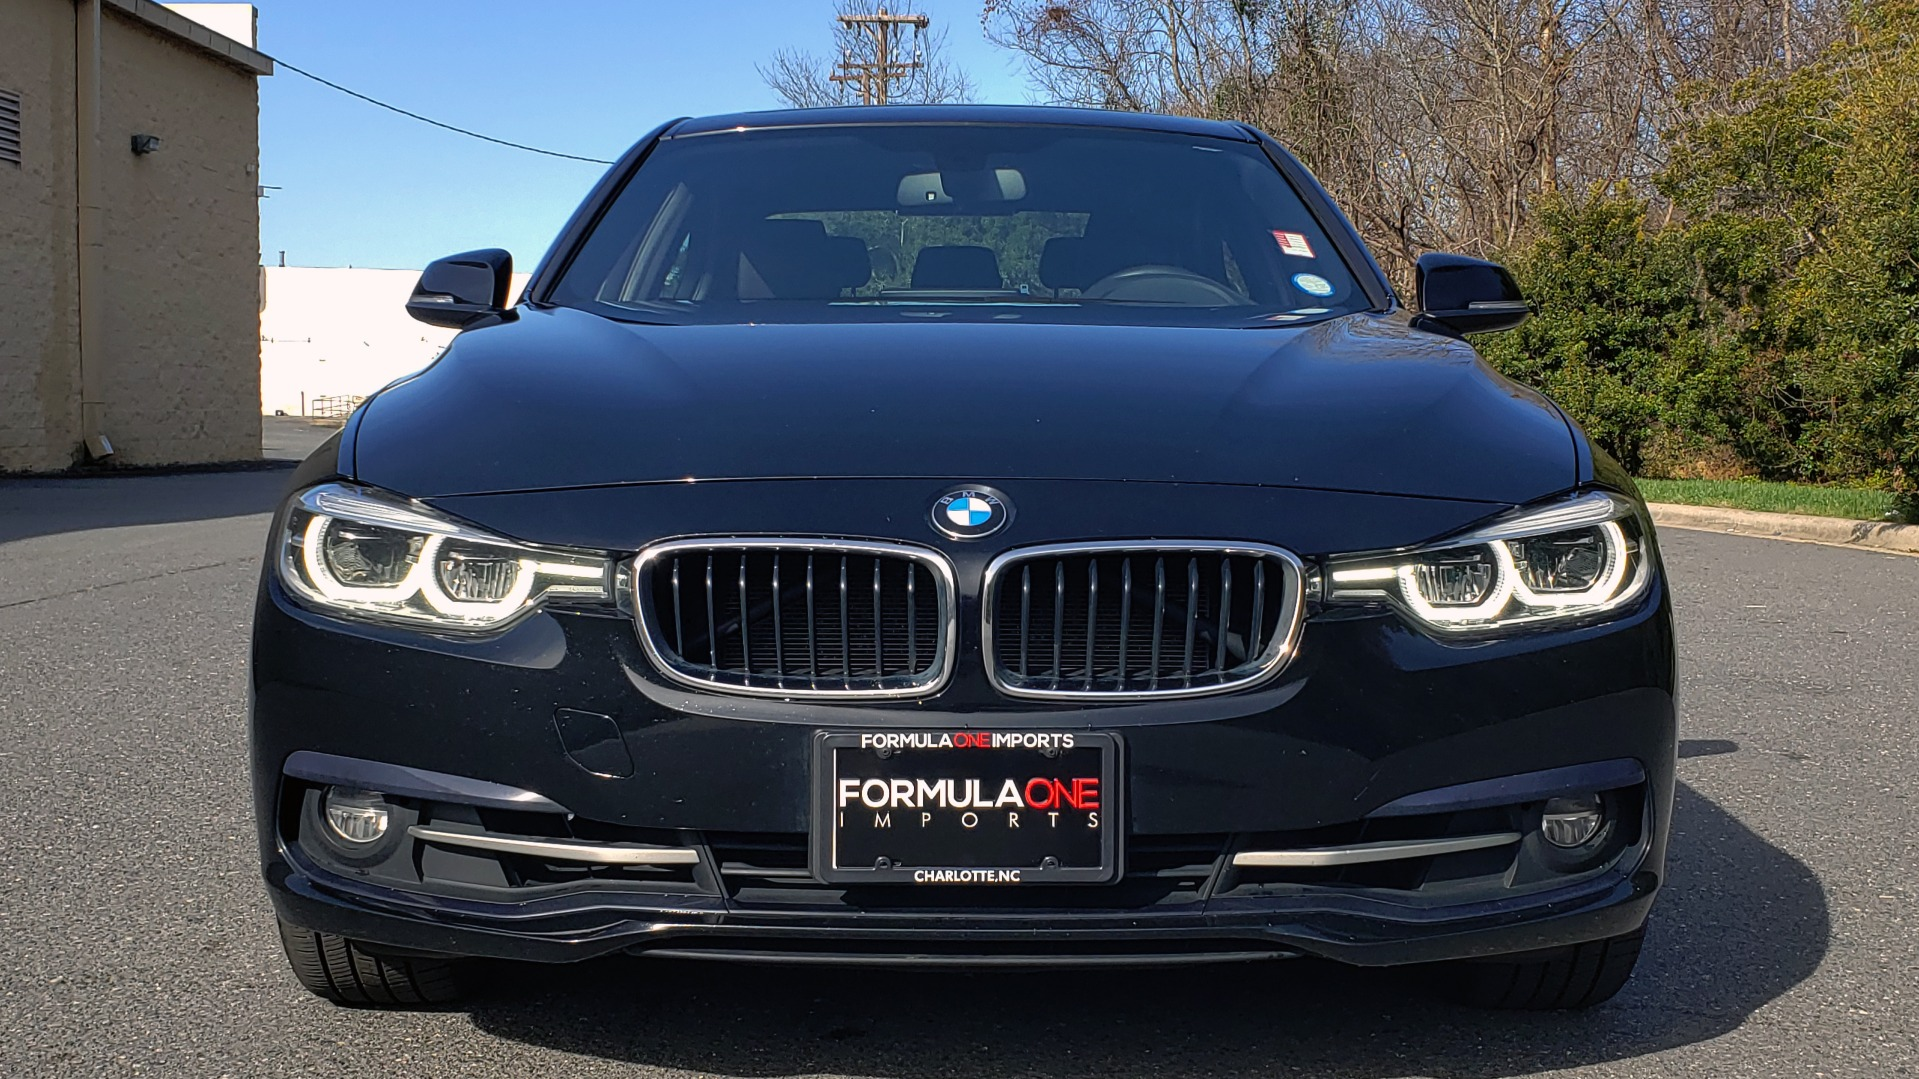 Used 2018 BMW 3 SERIES 330I XDRIVE / CONV PKG / NAV / HTD STS / SUNROOF / REARVIEW for sale Sold at Formula Imports in Charlotte NC 28227 16